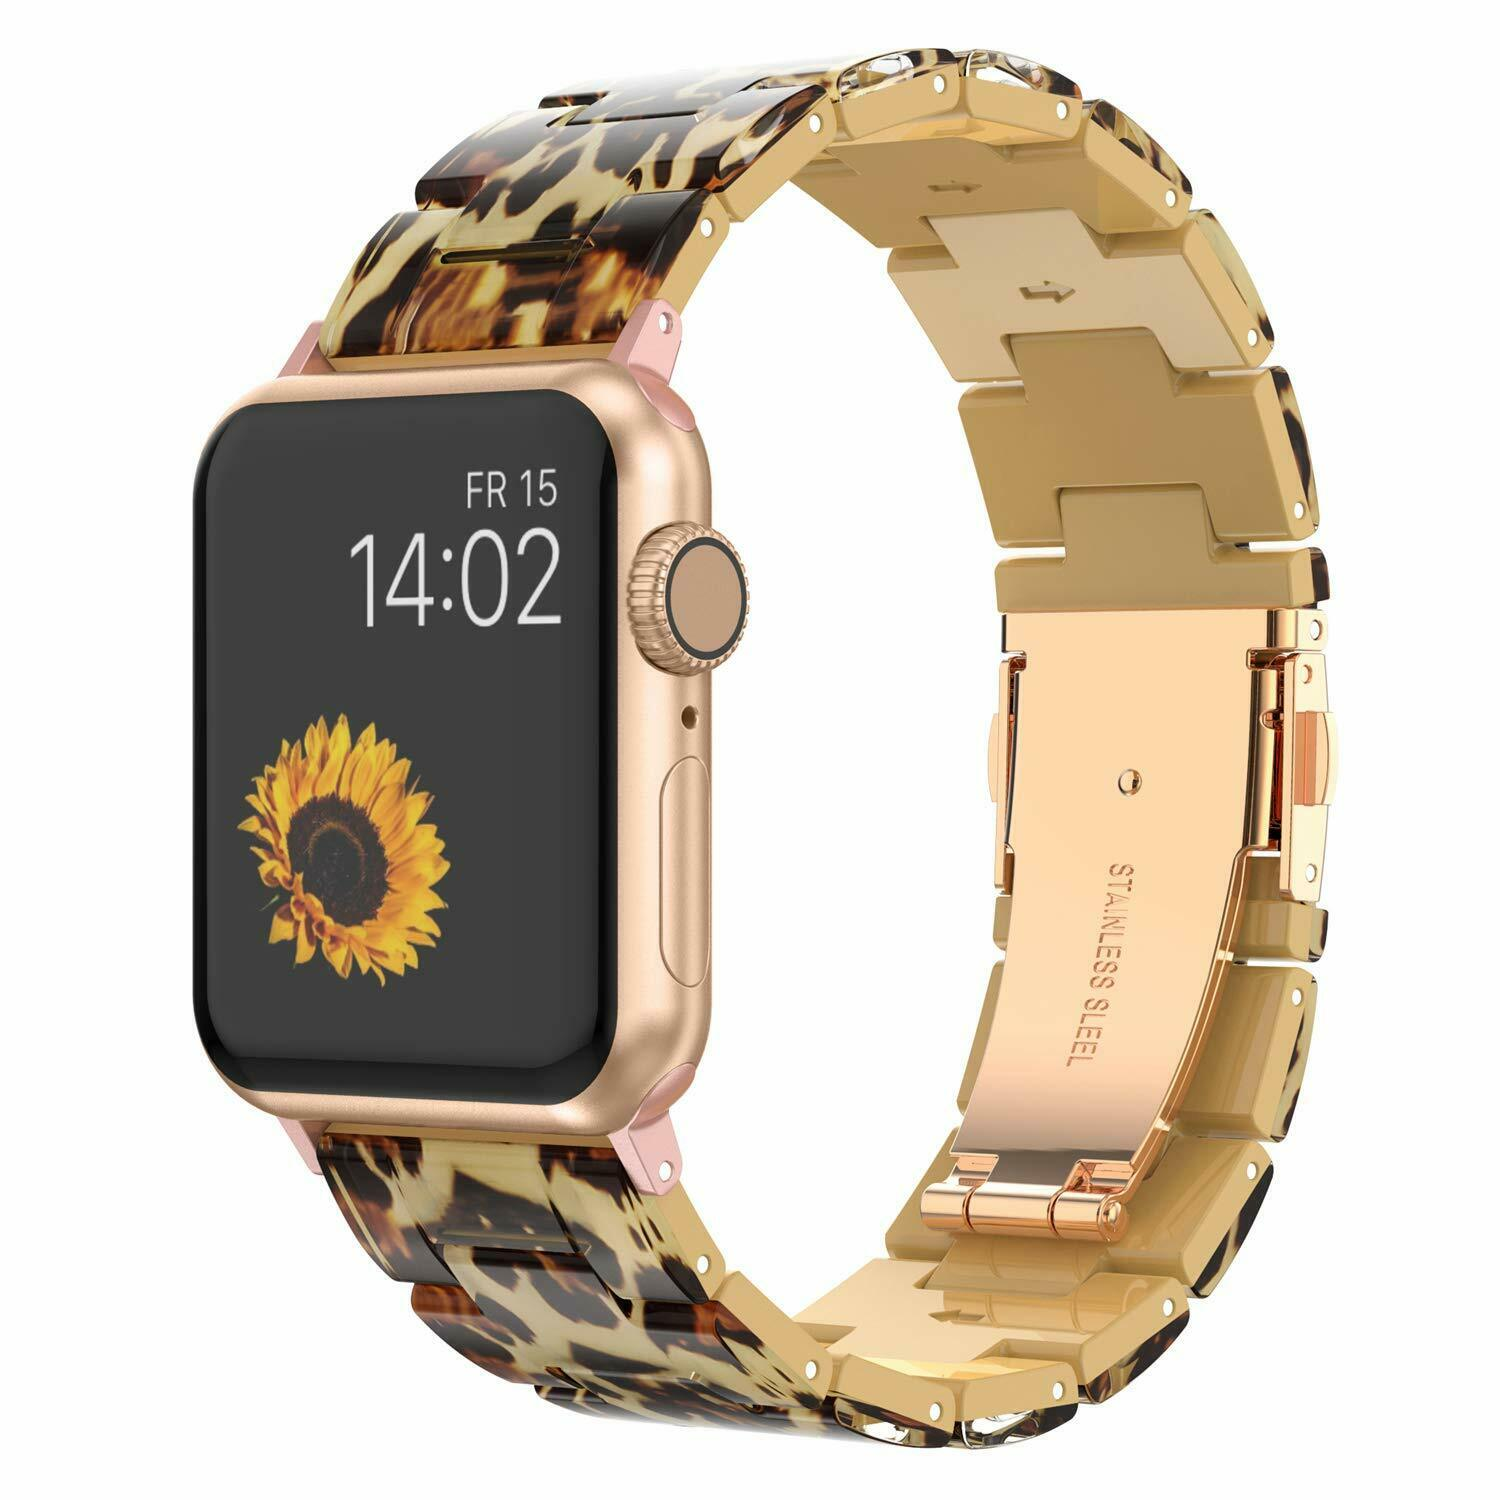 Replacement Leopard Print Band For Apple Watch Series 5 2 3 4 38/42mm Polishing Resin Bracelet Wrist Band Strap image